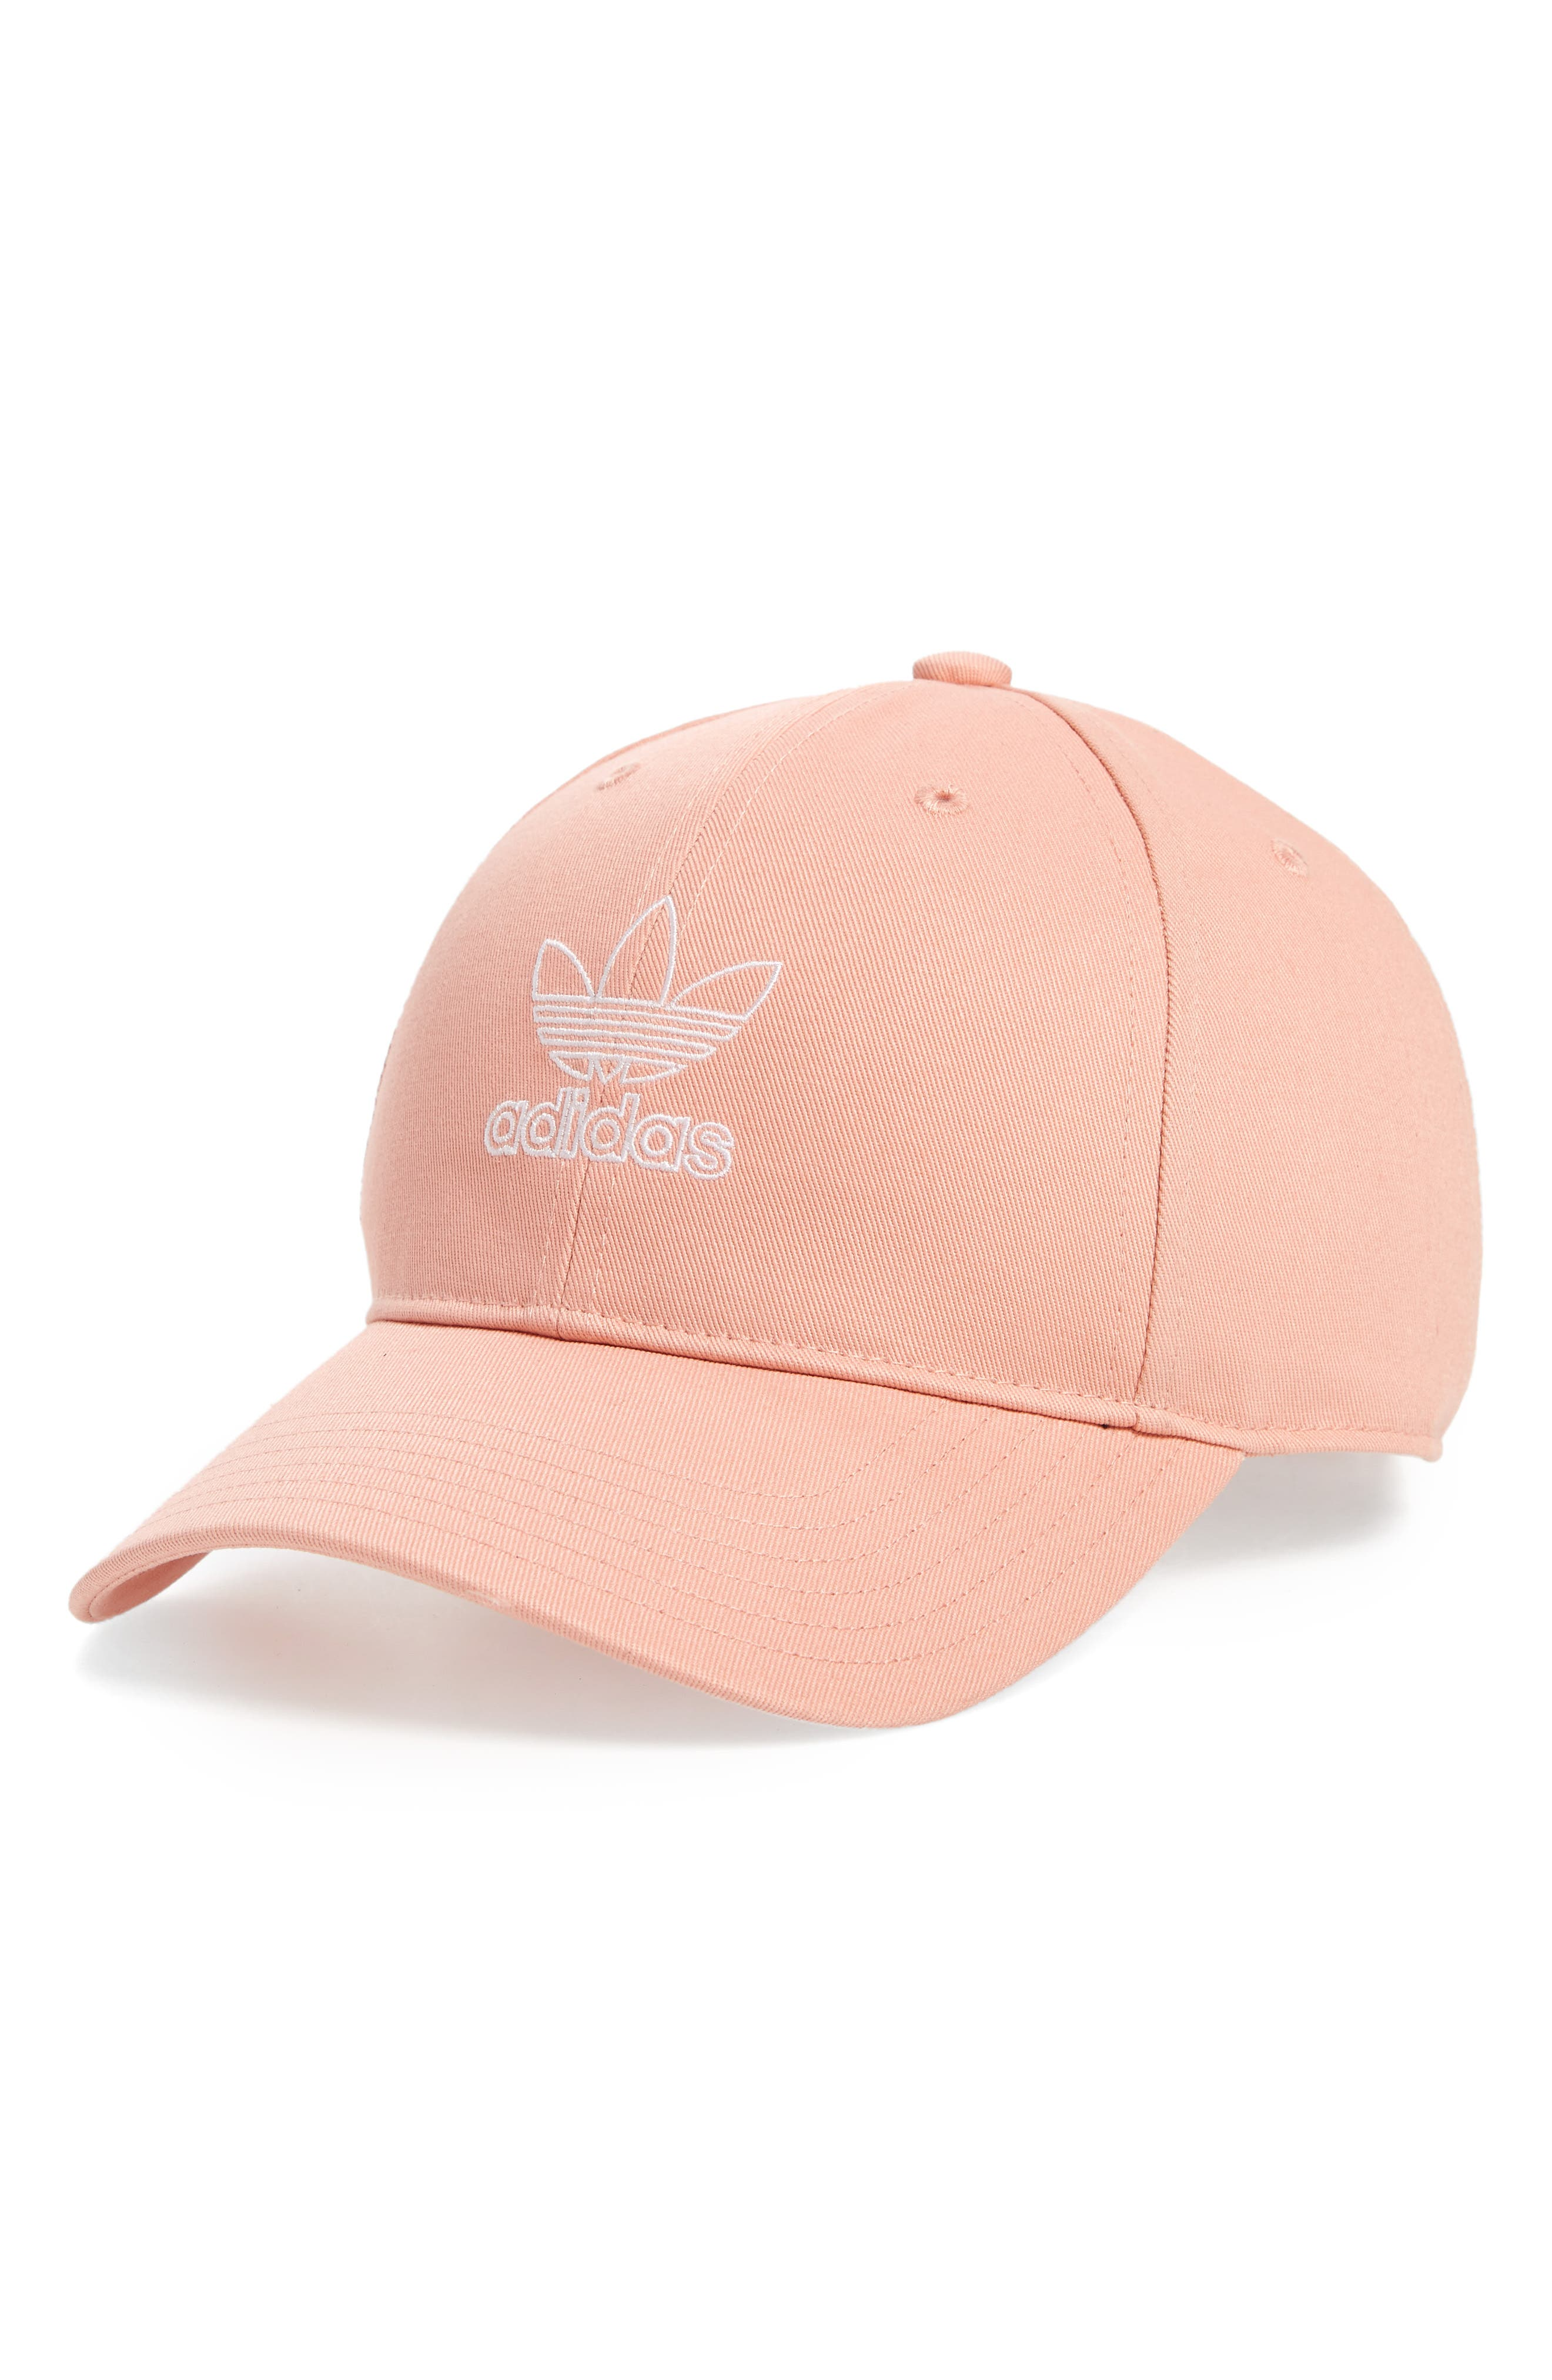 73b96146 Adidas Hats for Women | Nordstrom